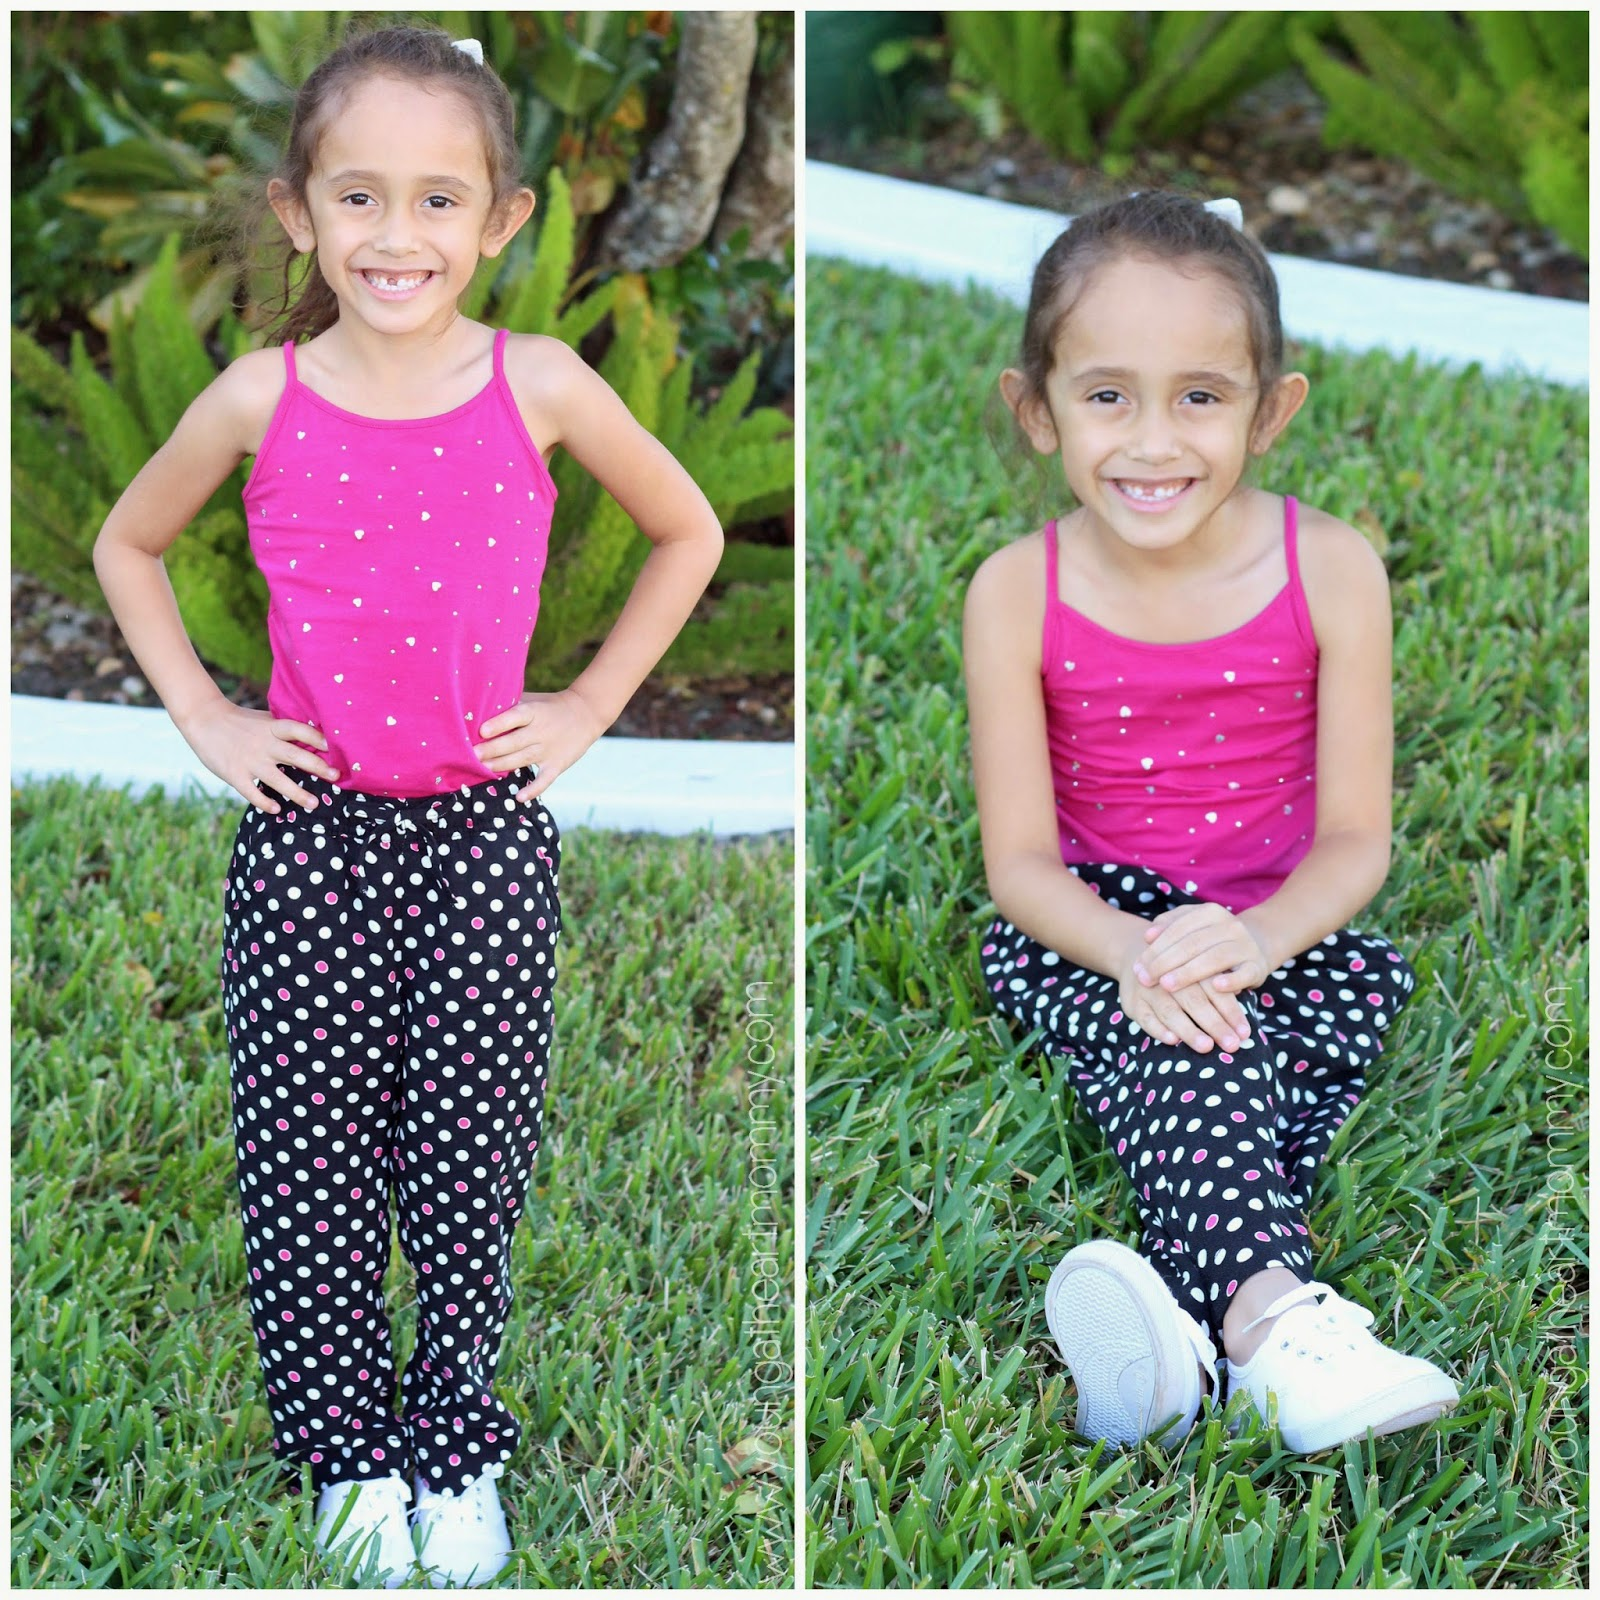 aa77aa75c2a Sparkle + Shine At The Children s Place +  25 GC Giveaway   BigFashionLittlePrices - Young At Heart Mommy